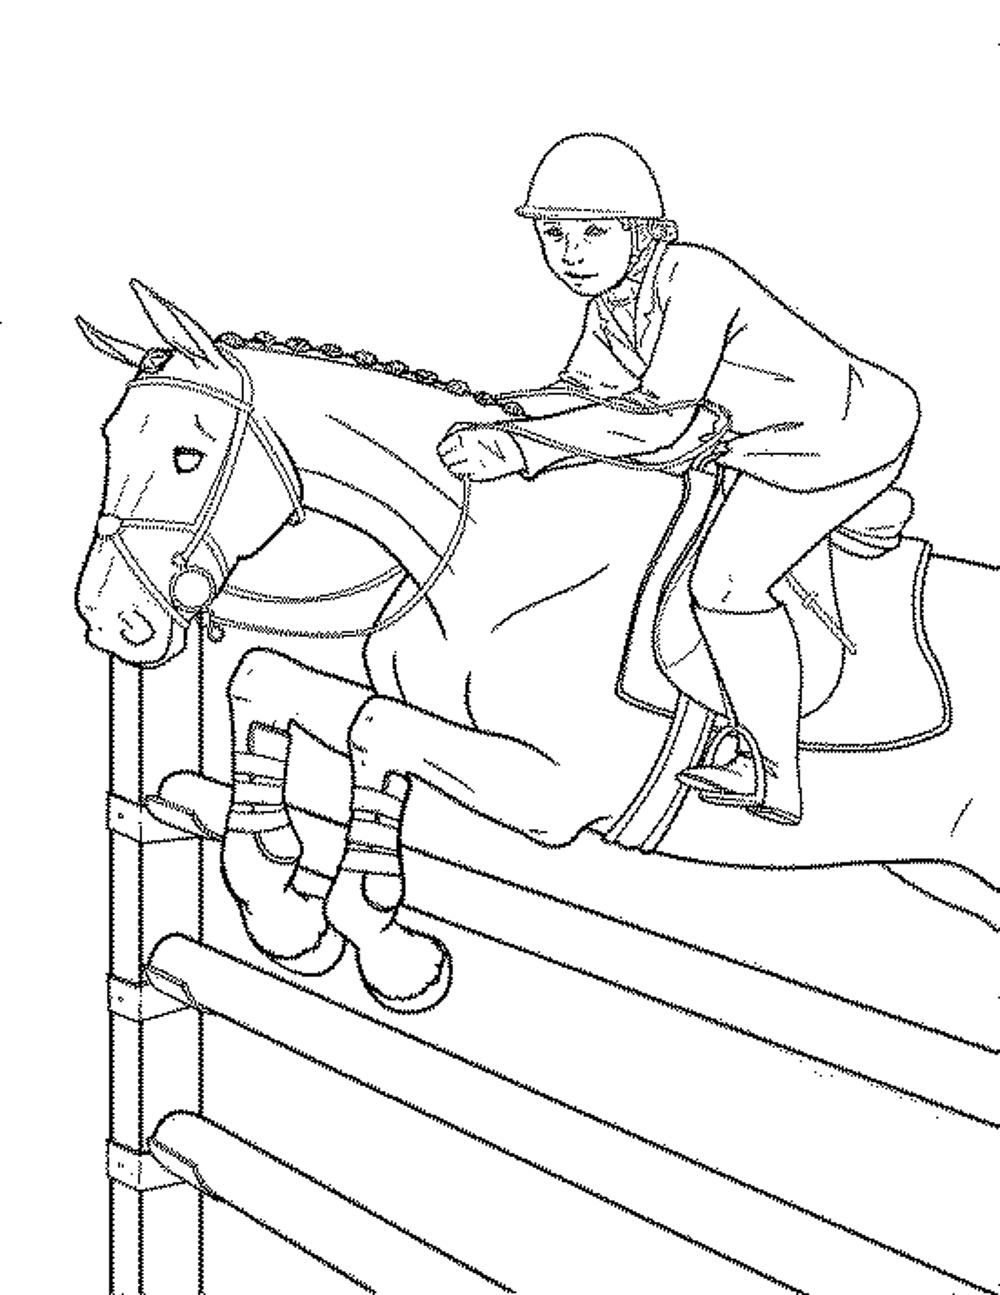 Race Horse Drawing at GetDrawings.com | Free for personal use Race ...